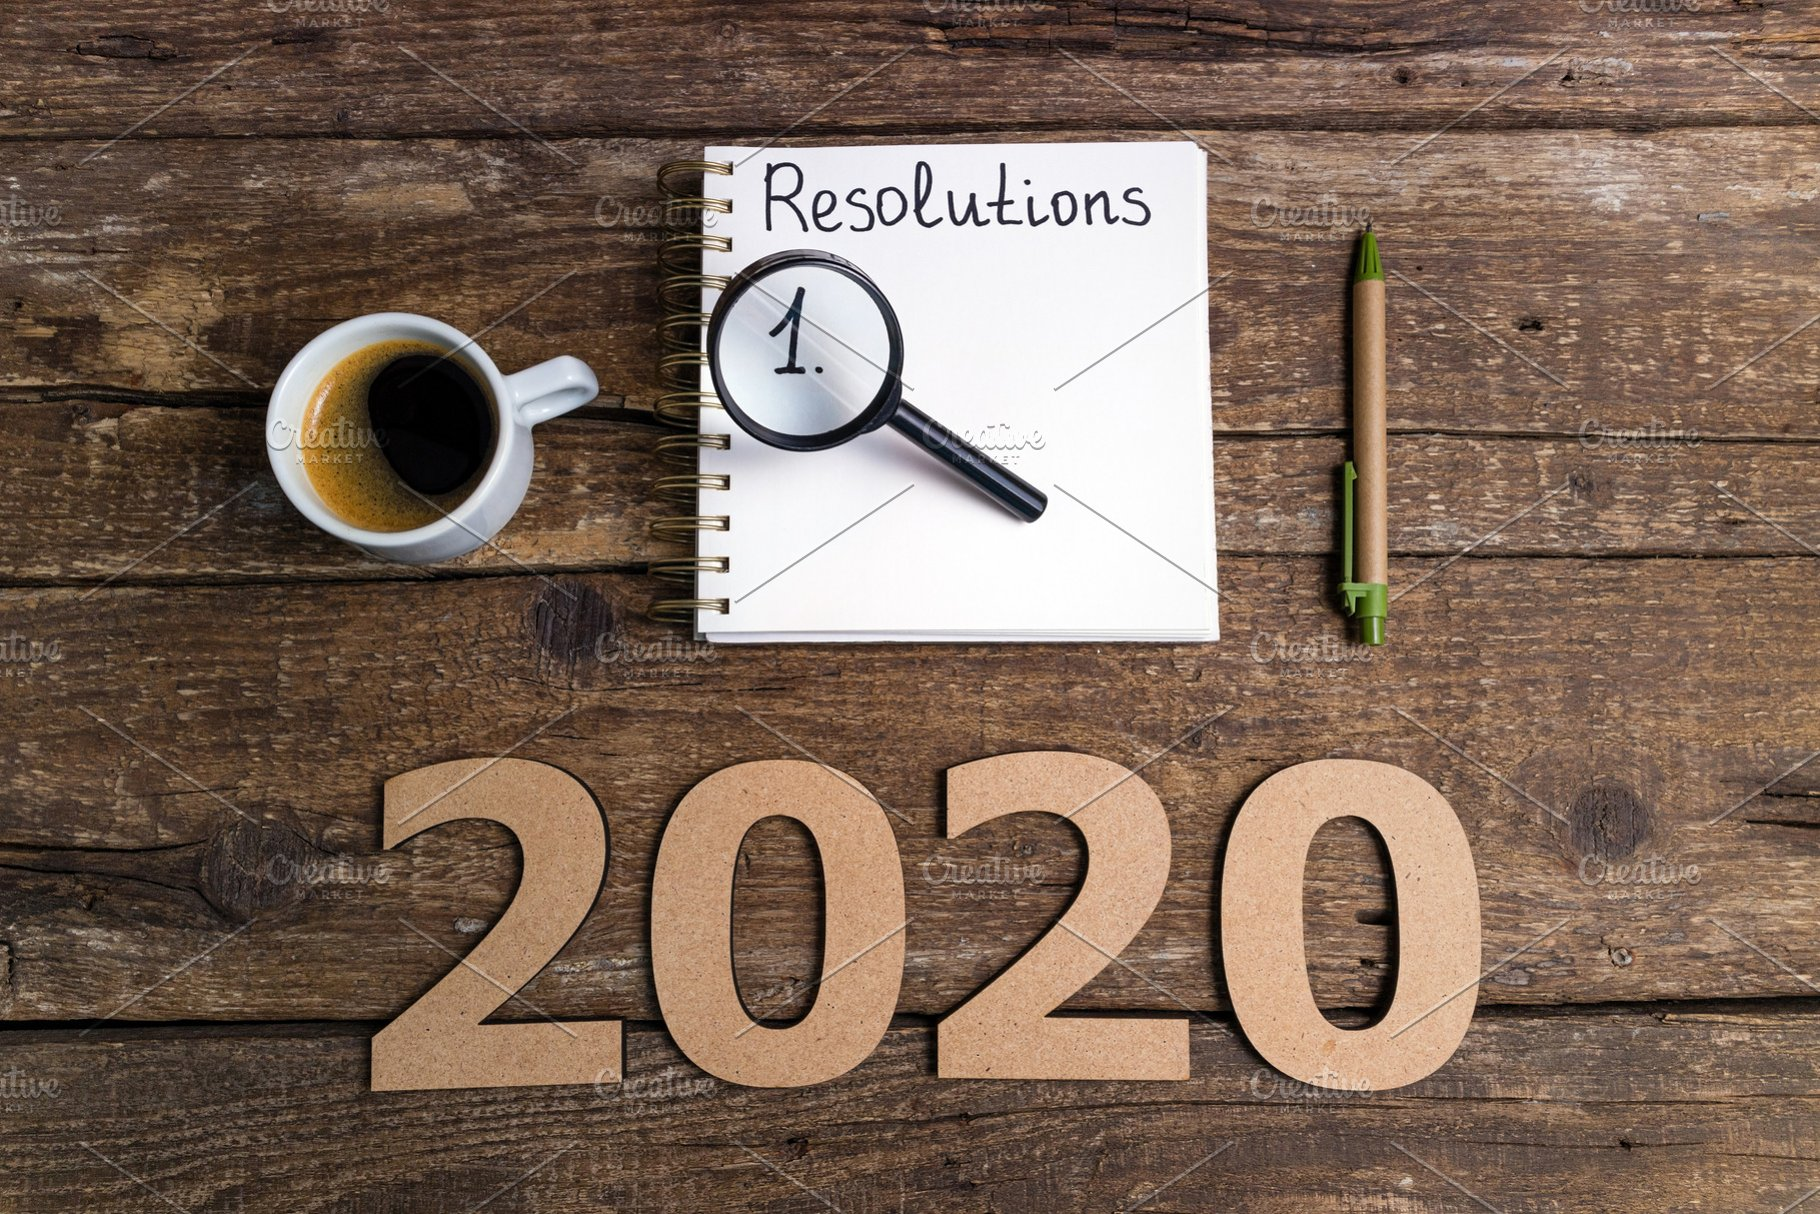 New Years Resolution 2020.New Year Resolutions 2020 On Desk